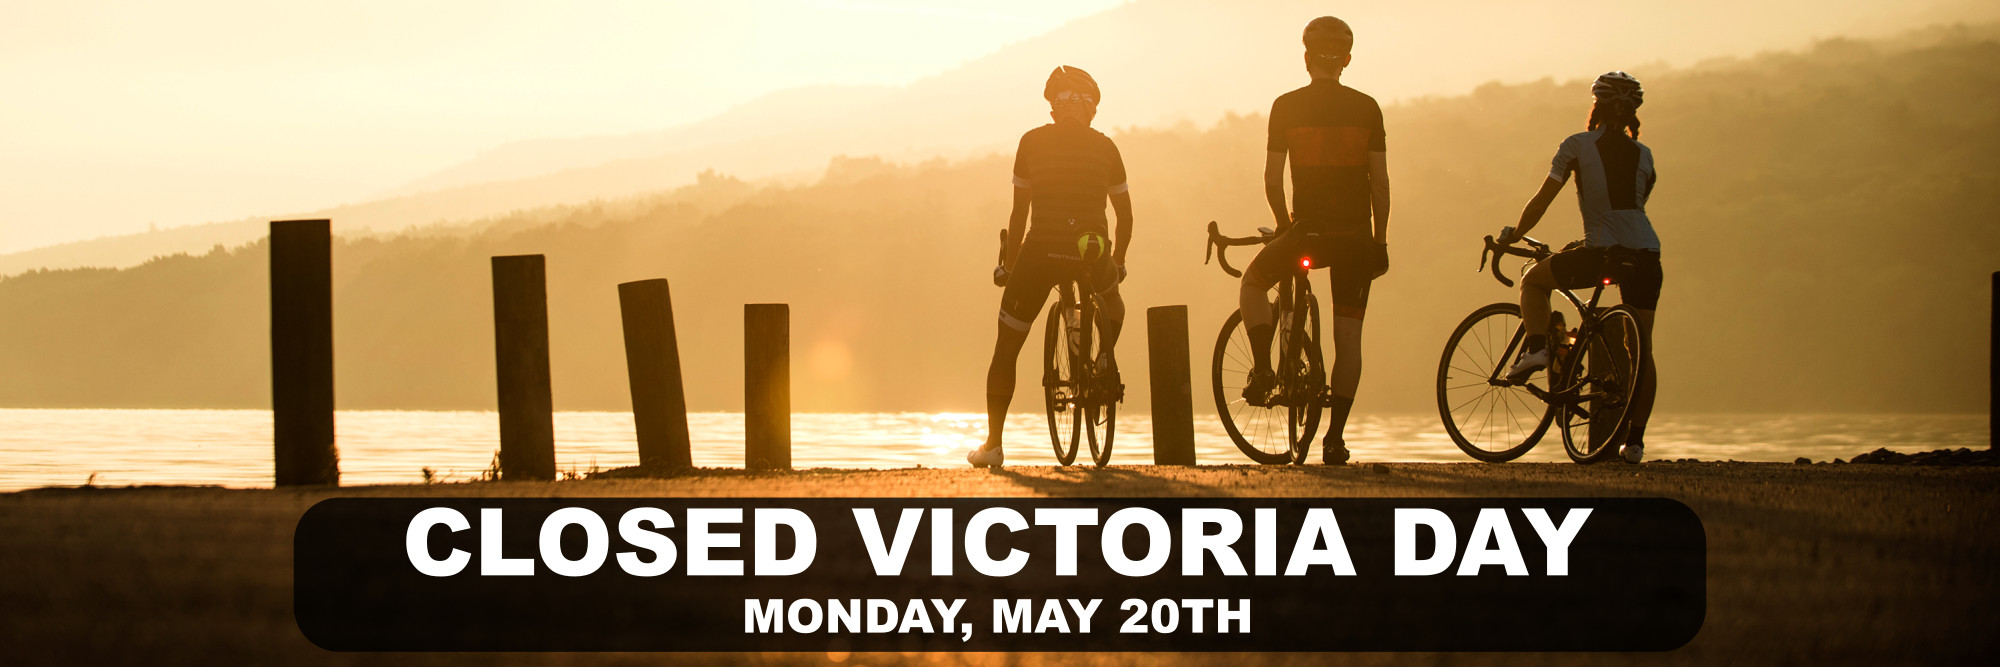 CLOSED Victoria Day - Monday, May 20th